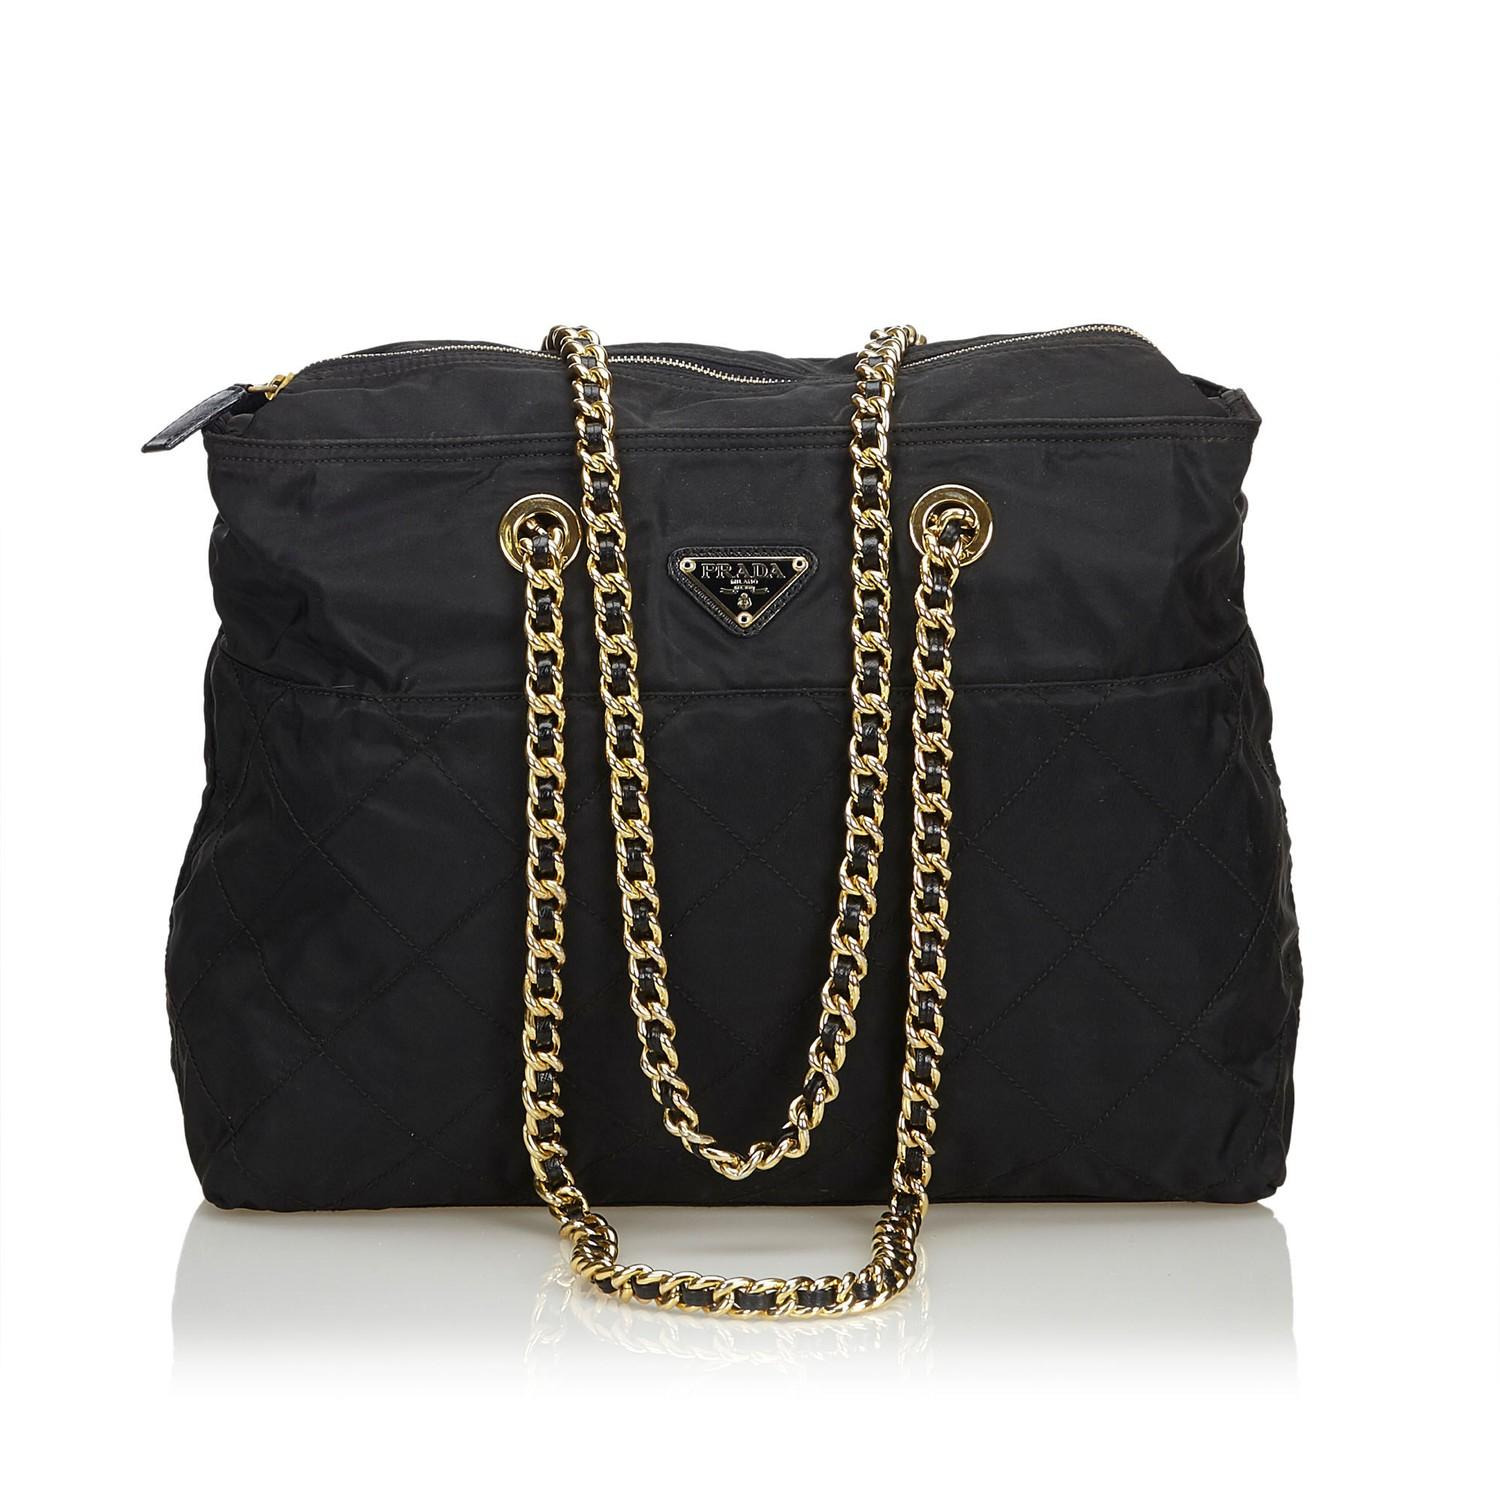 A Prada Tessuto Black Gold, gives you a sporty chic style. In quilted nylon it features gold chain